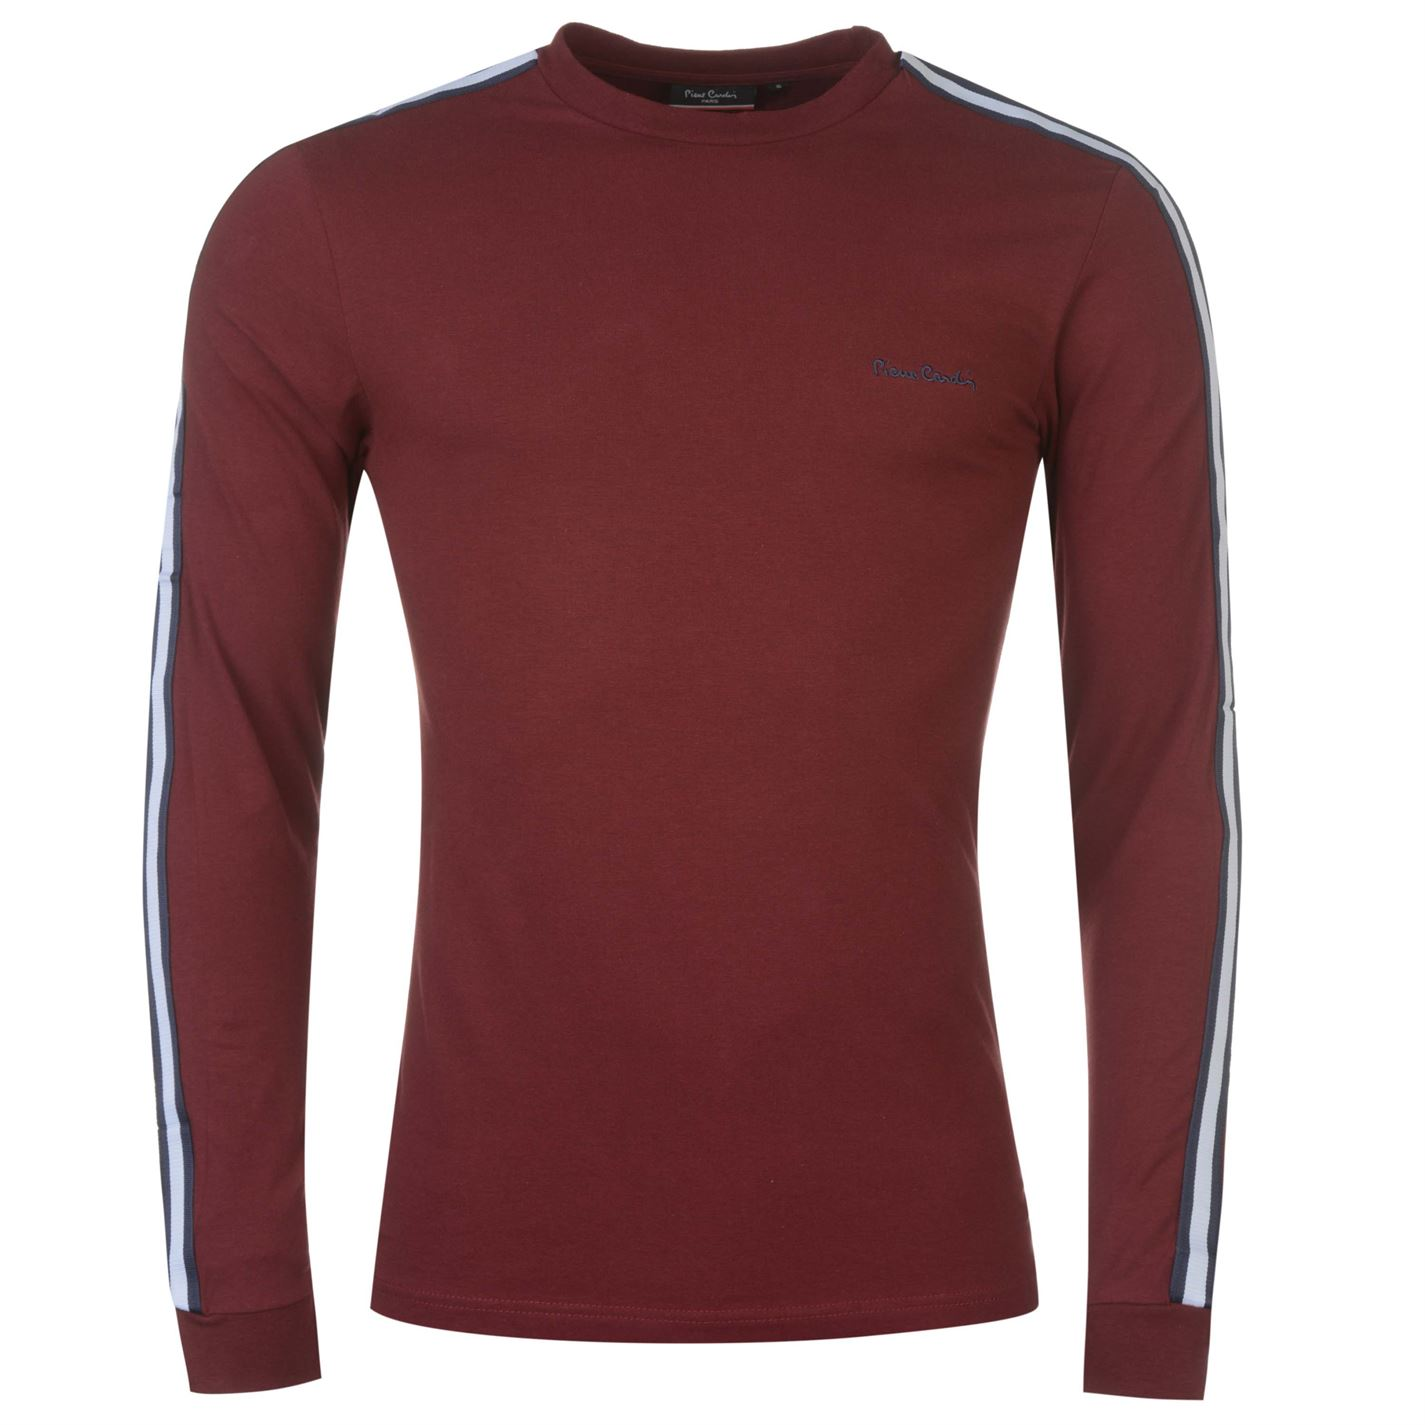 Retro Long Sleeve T Shirt